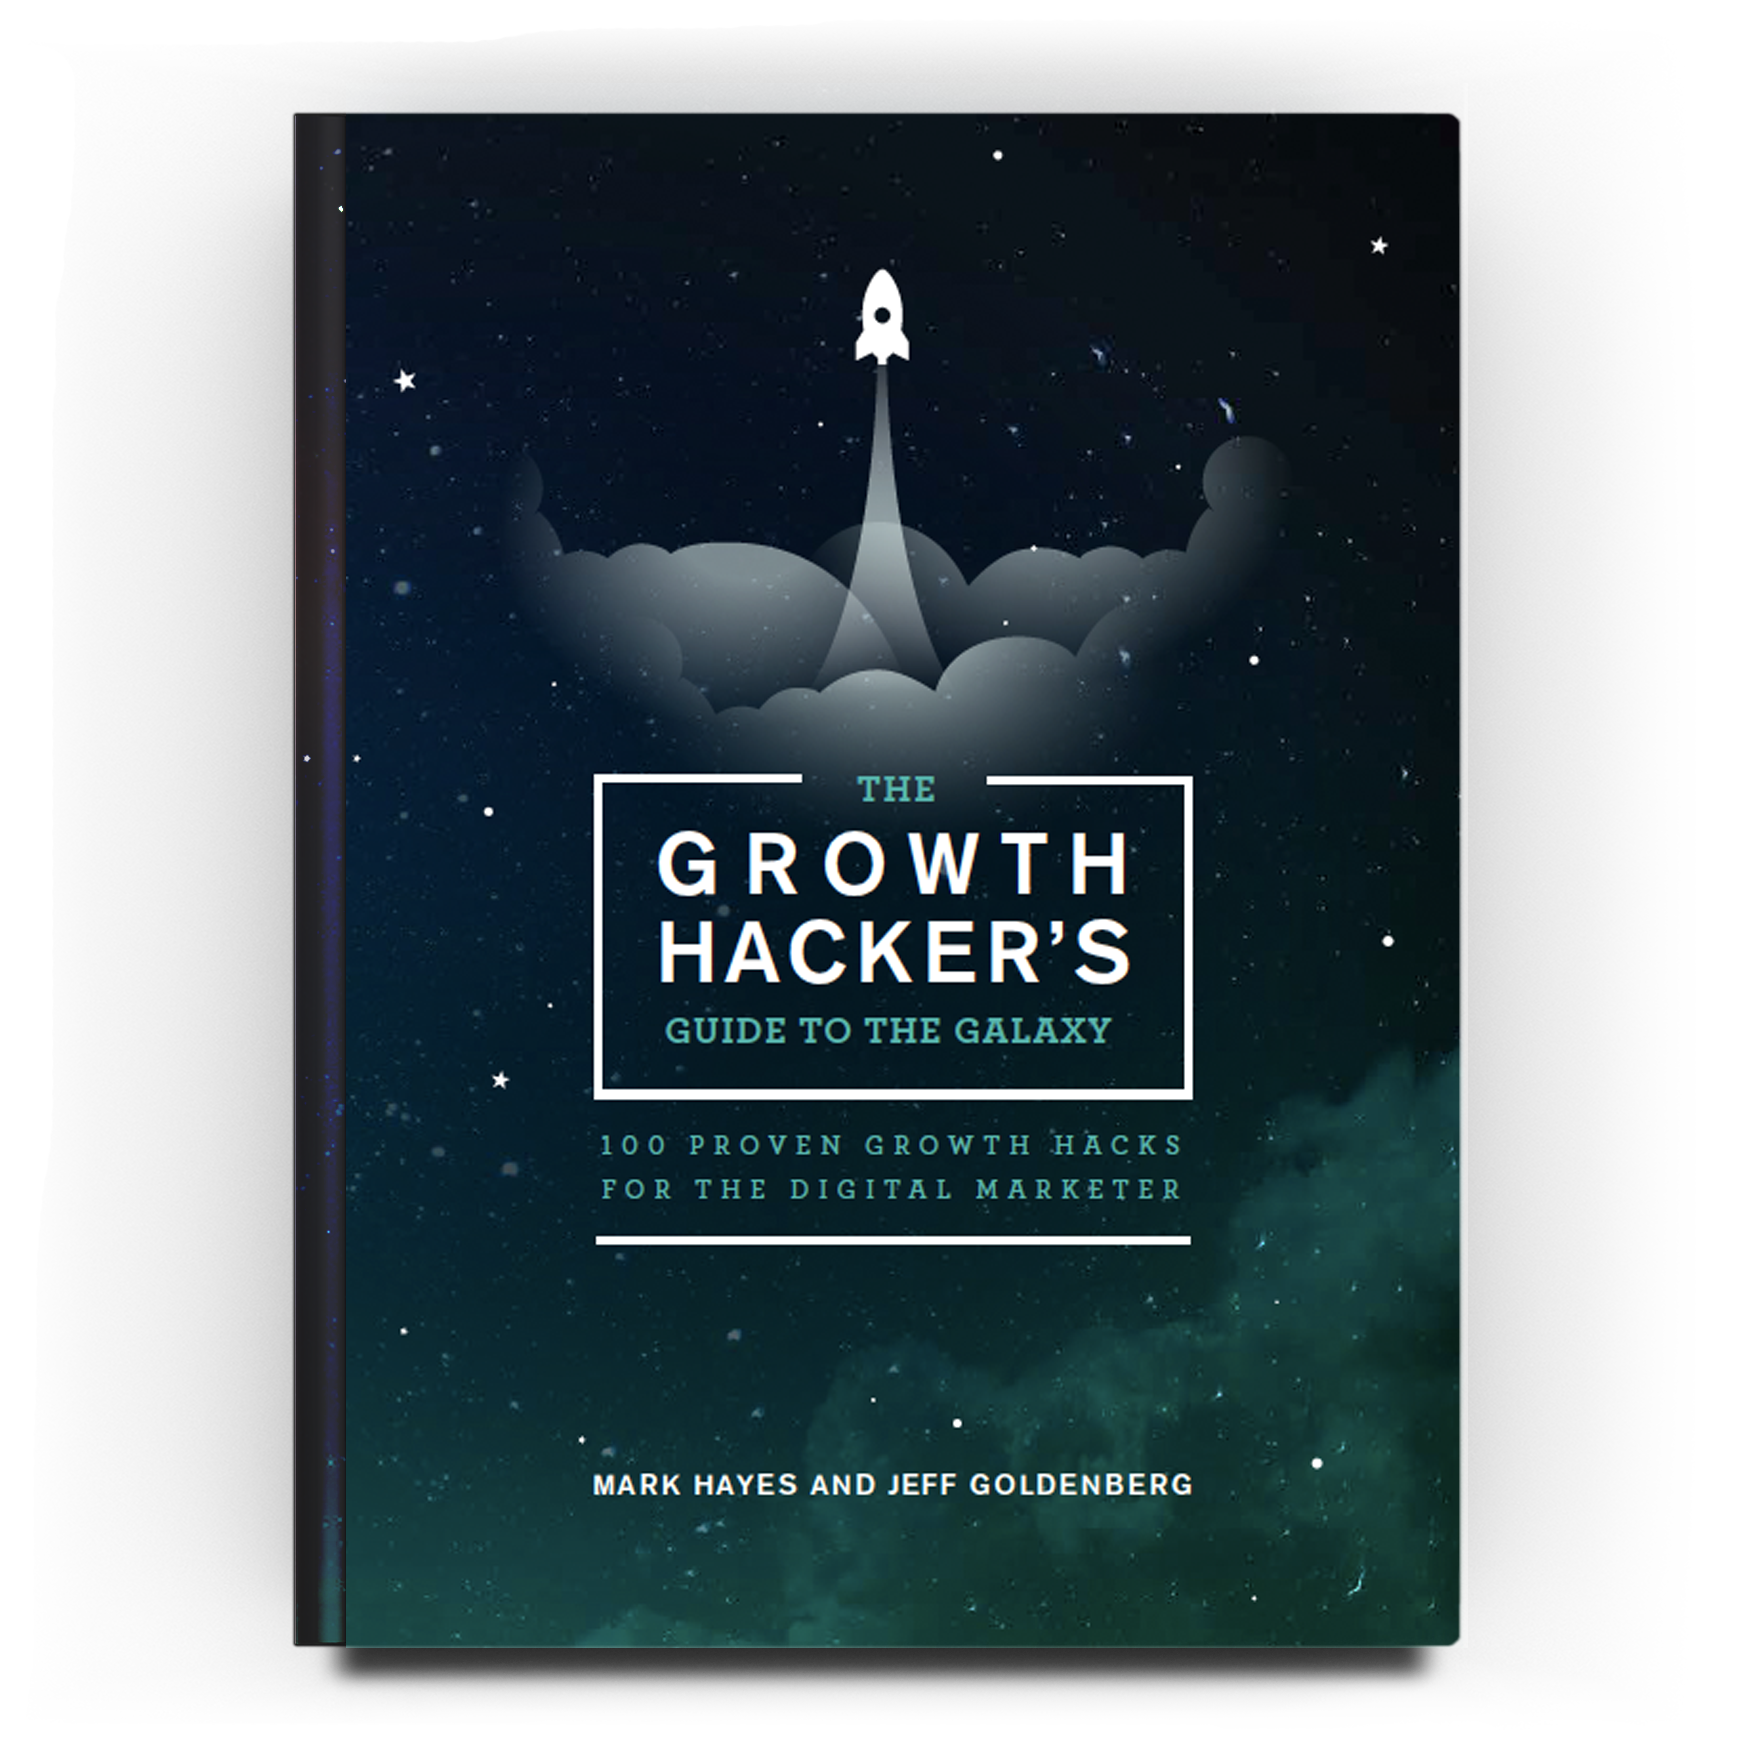 The Growth Hacker's Guide to the Galaxy is LIVE on Kindle